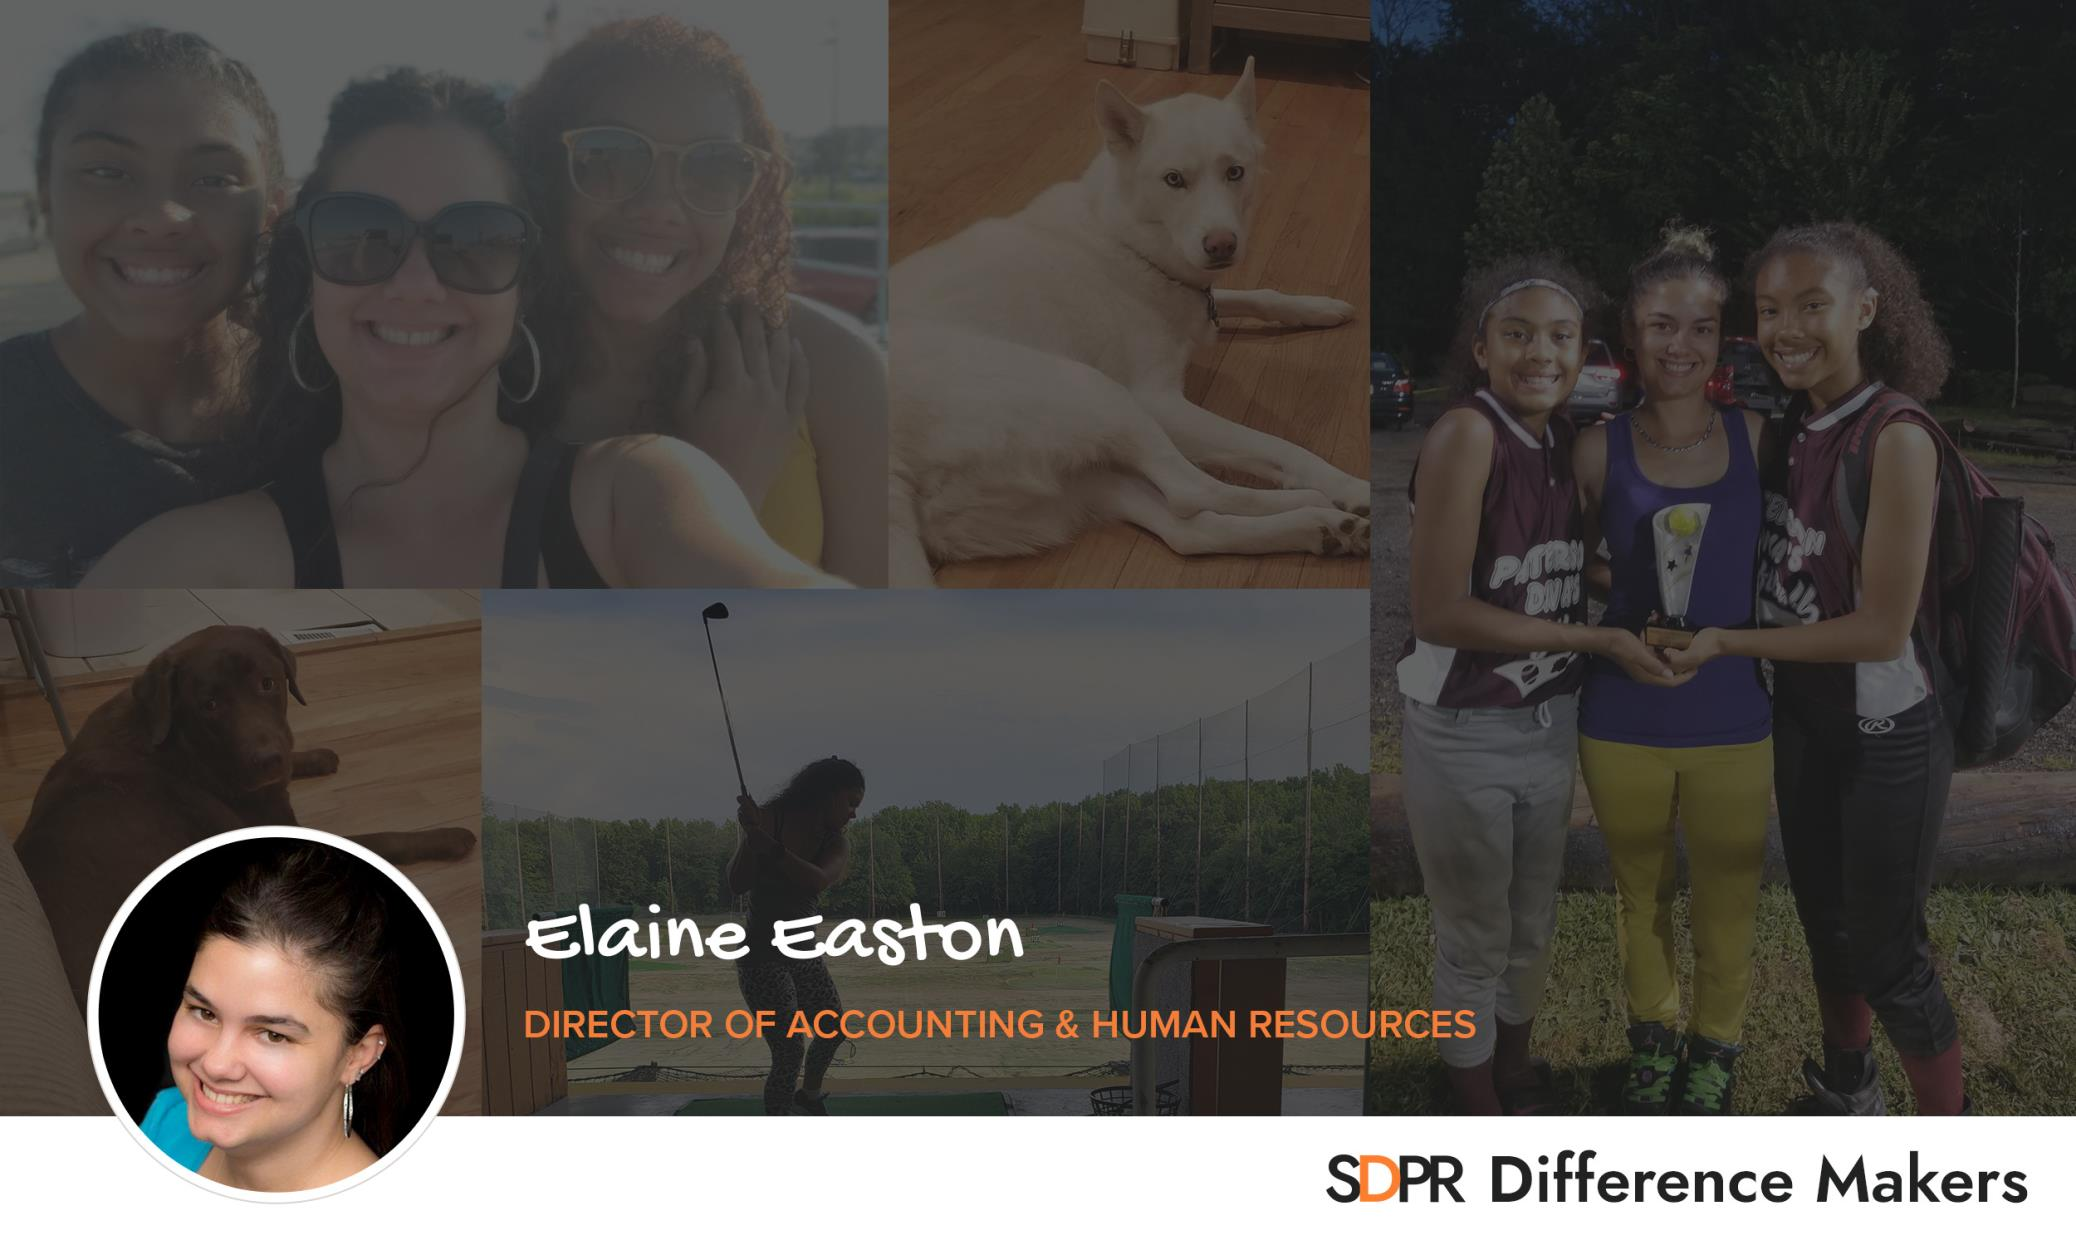 Meet Elaine: Accounting Director, Difference Maker, Super-Mom